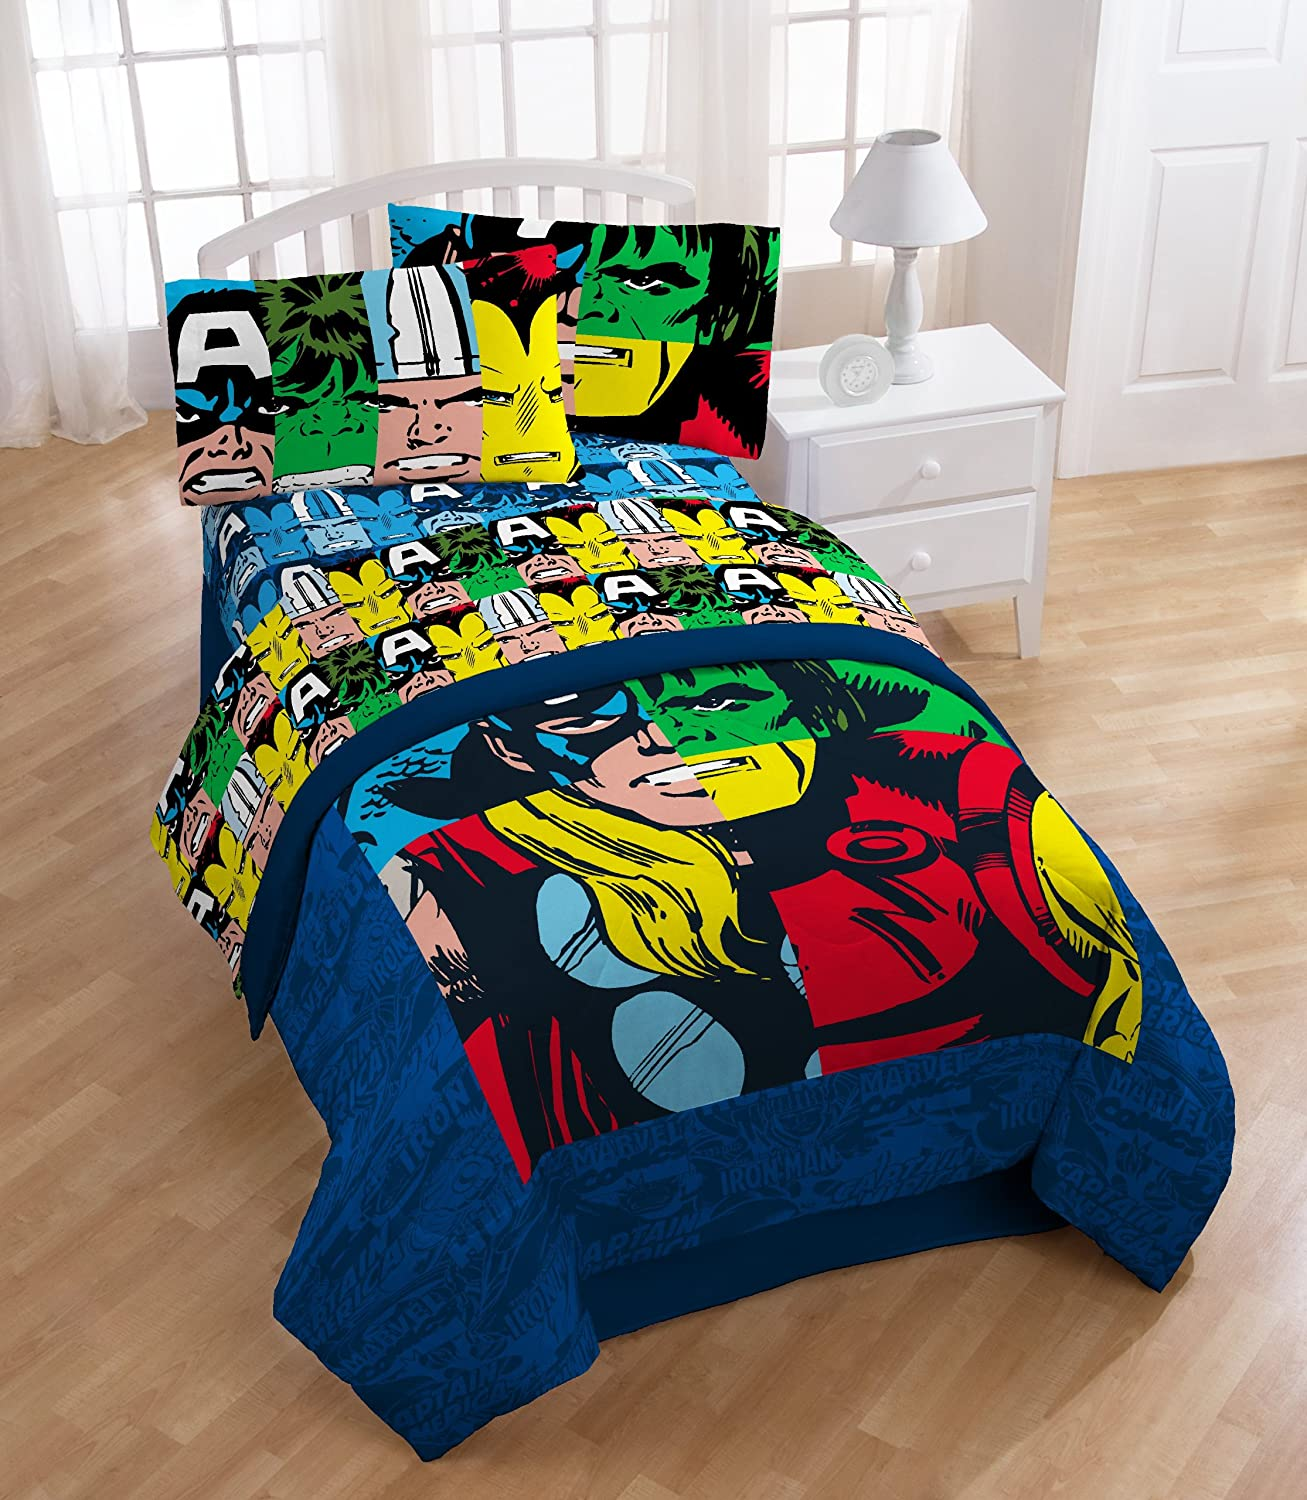 seashell avengers collection detail sheet pink anchor full marvel assemble beach themed sets navy of bedding bedroom large marvelous size comforter buy kawaii fitted